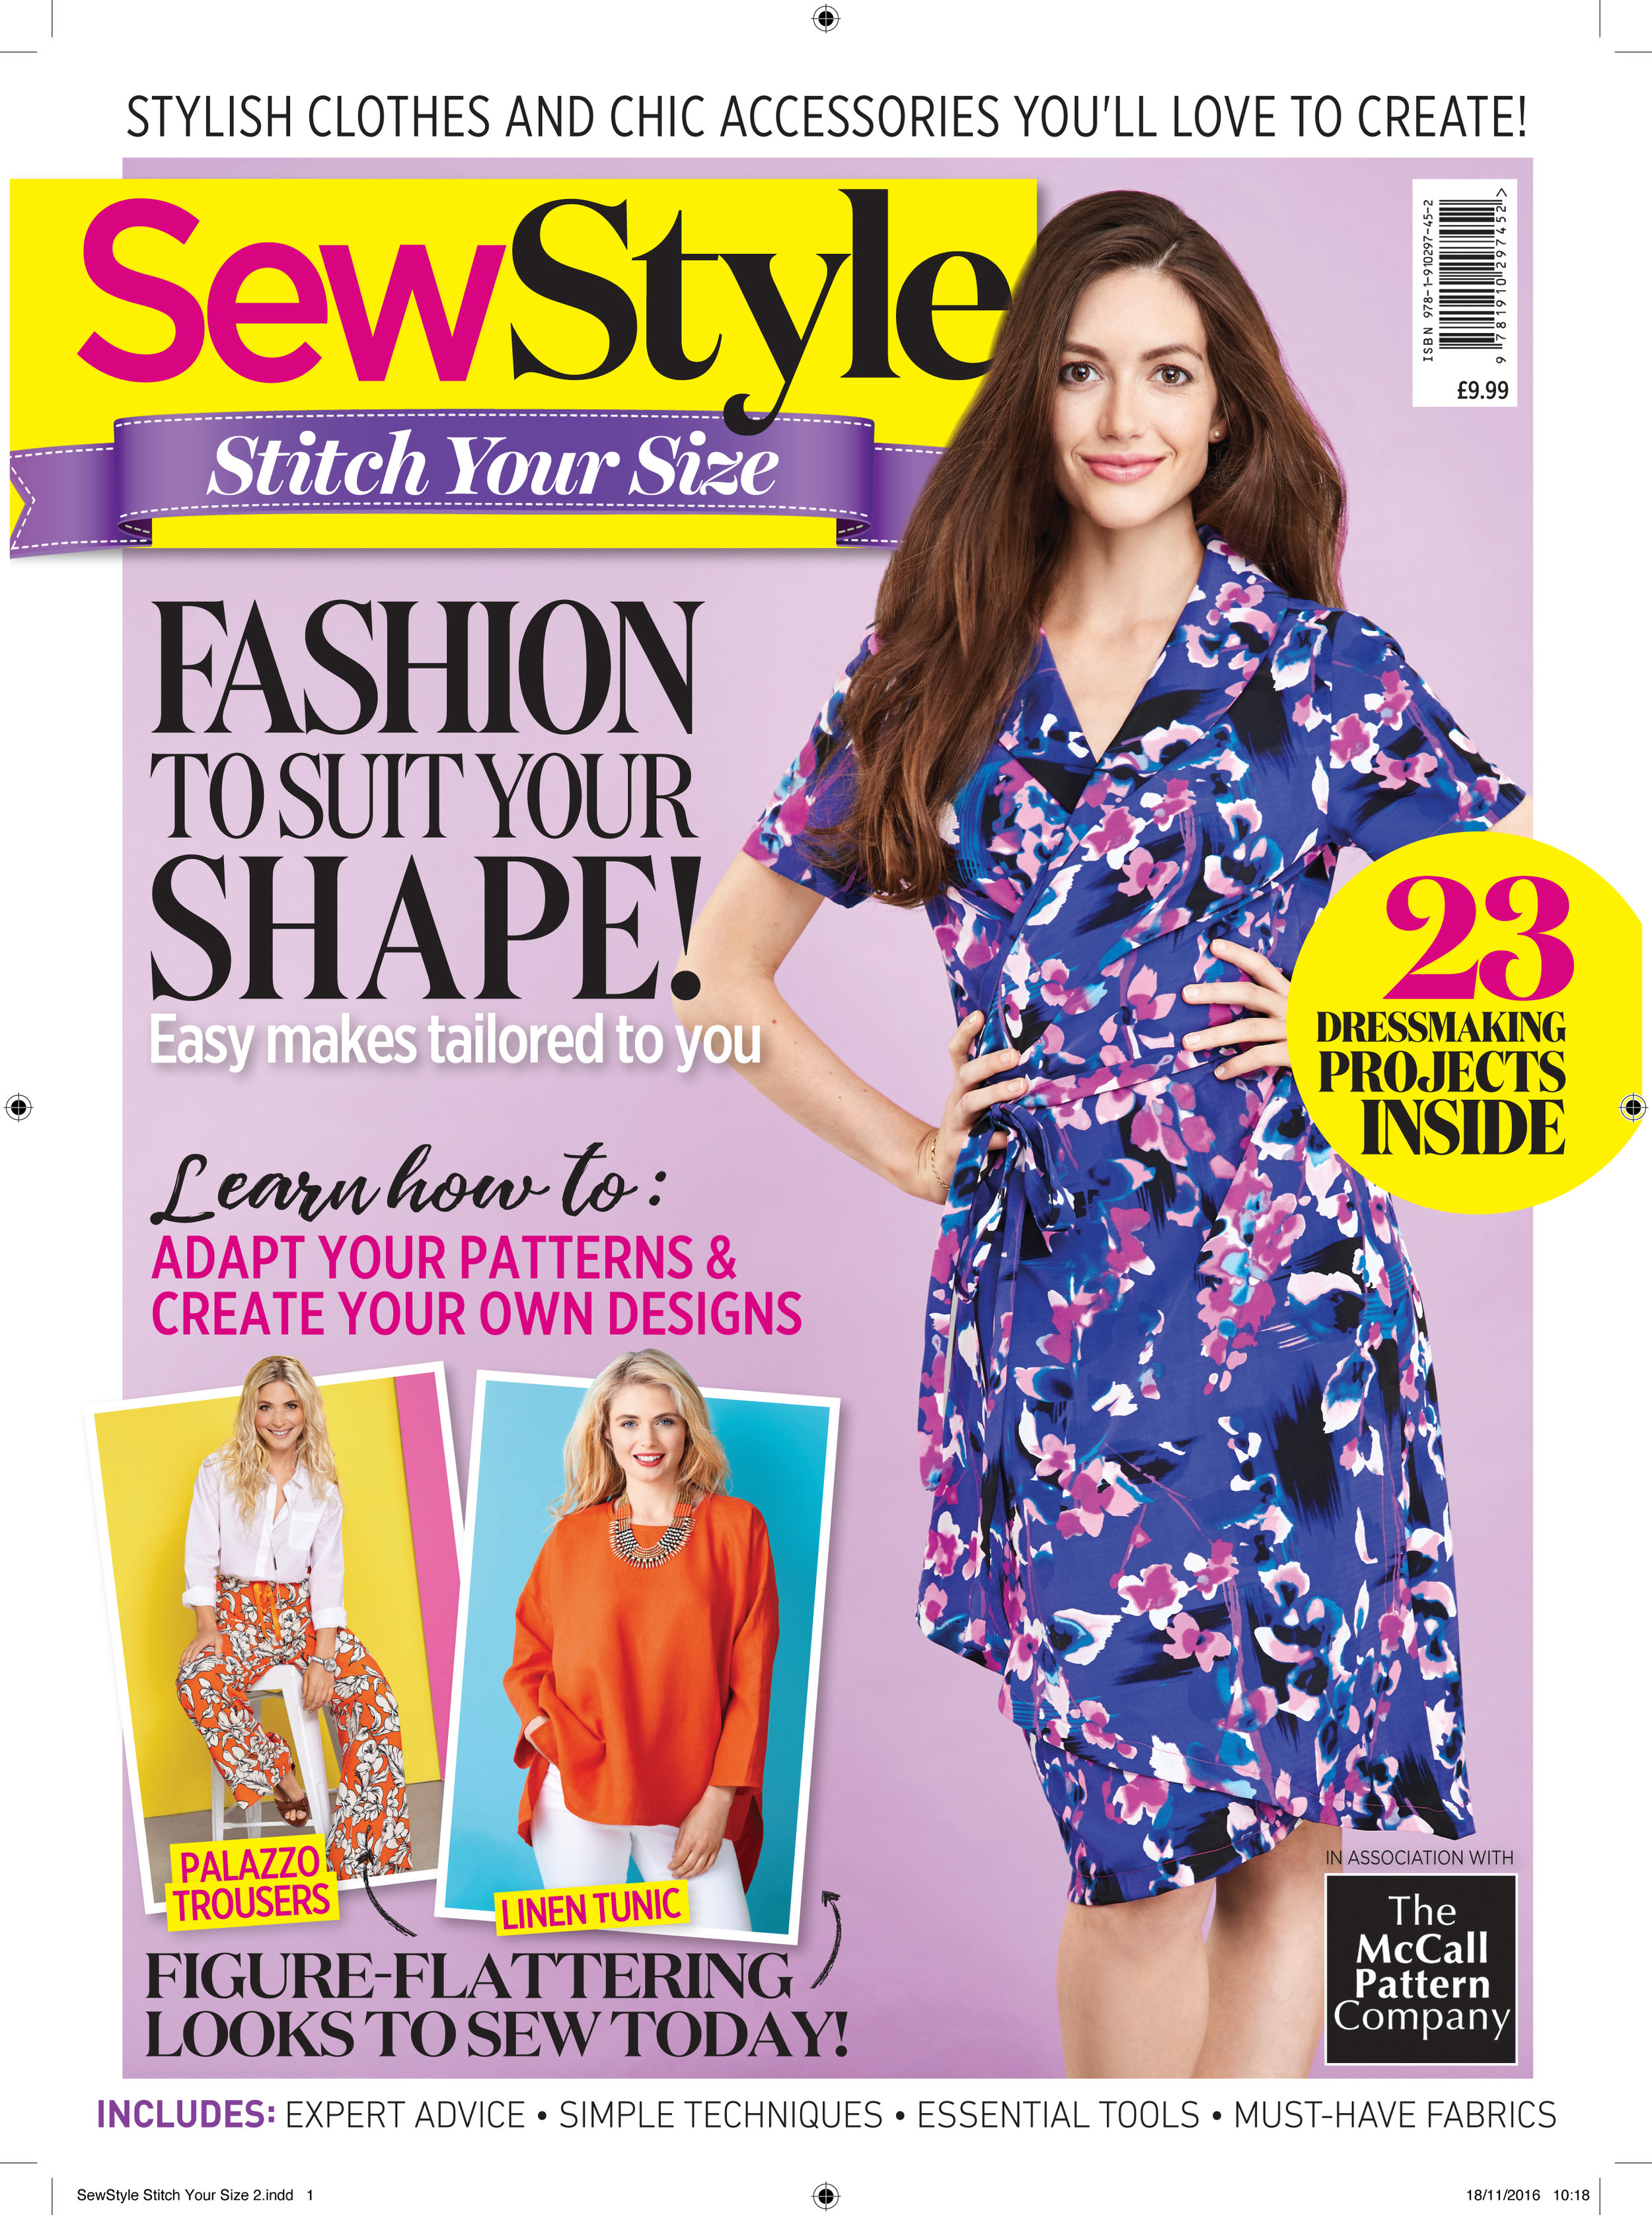 sew style cover.jpg